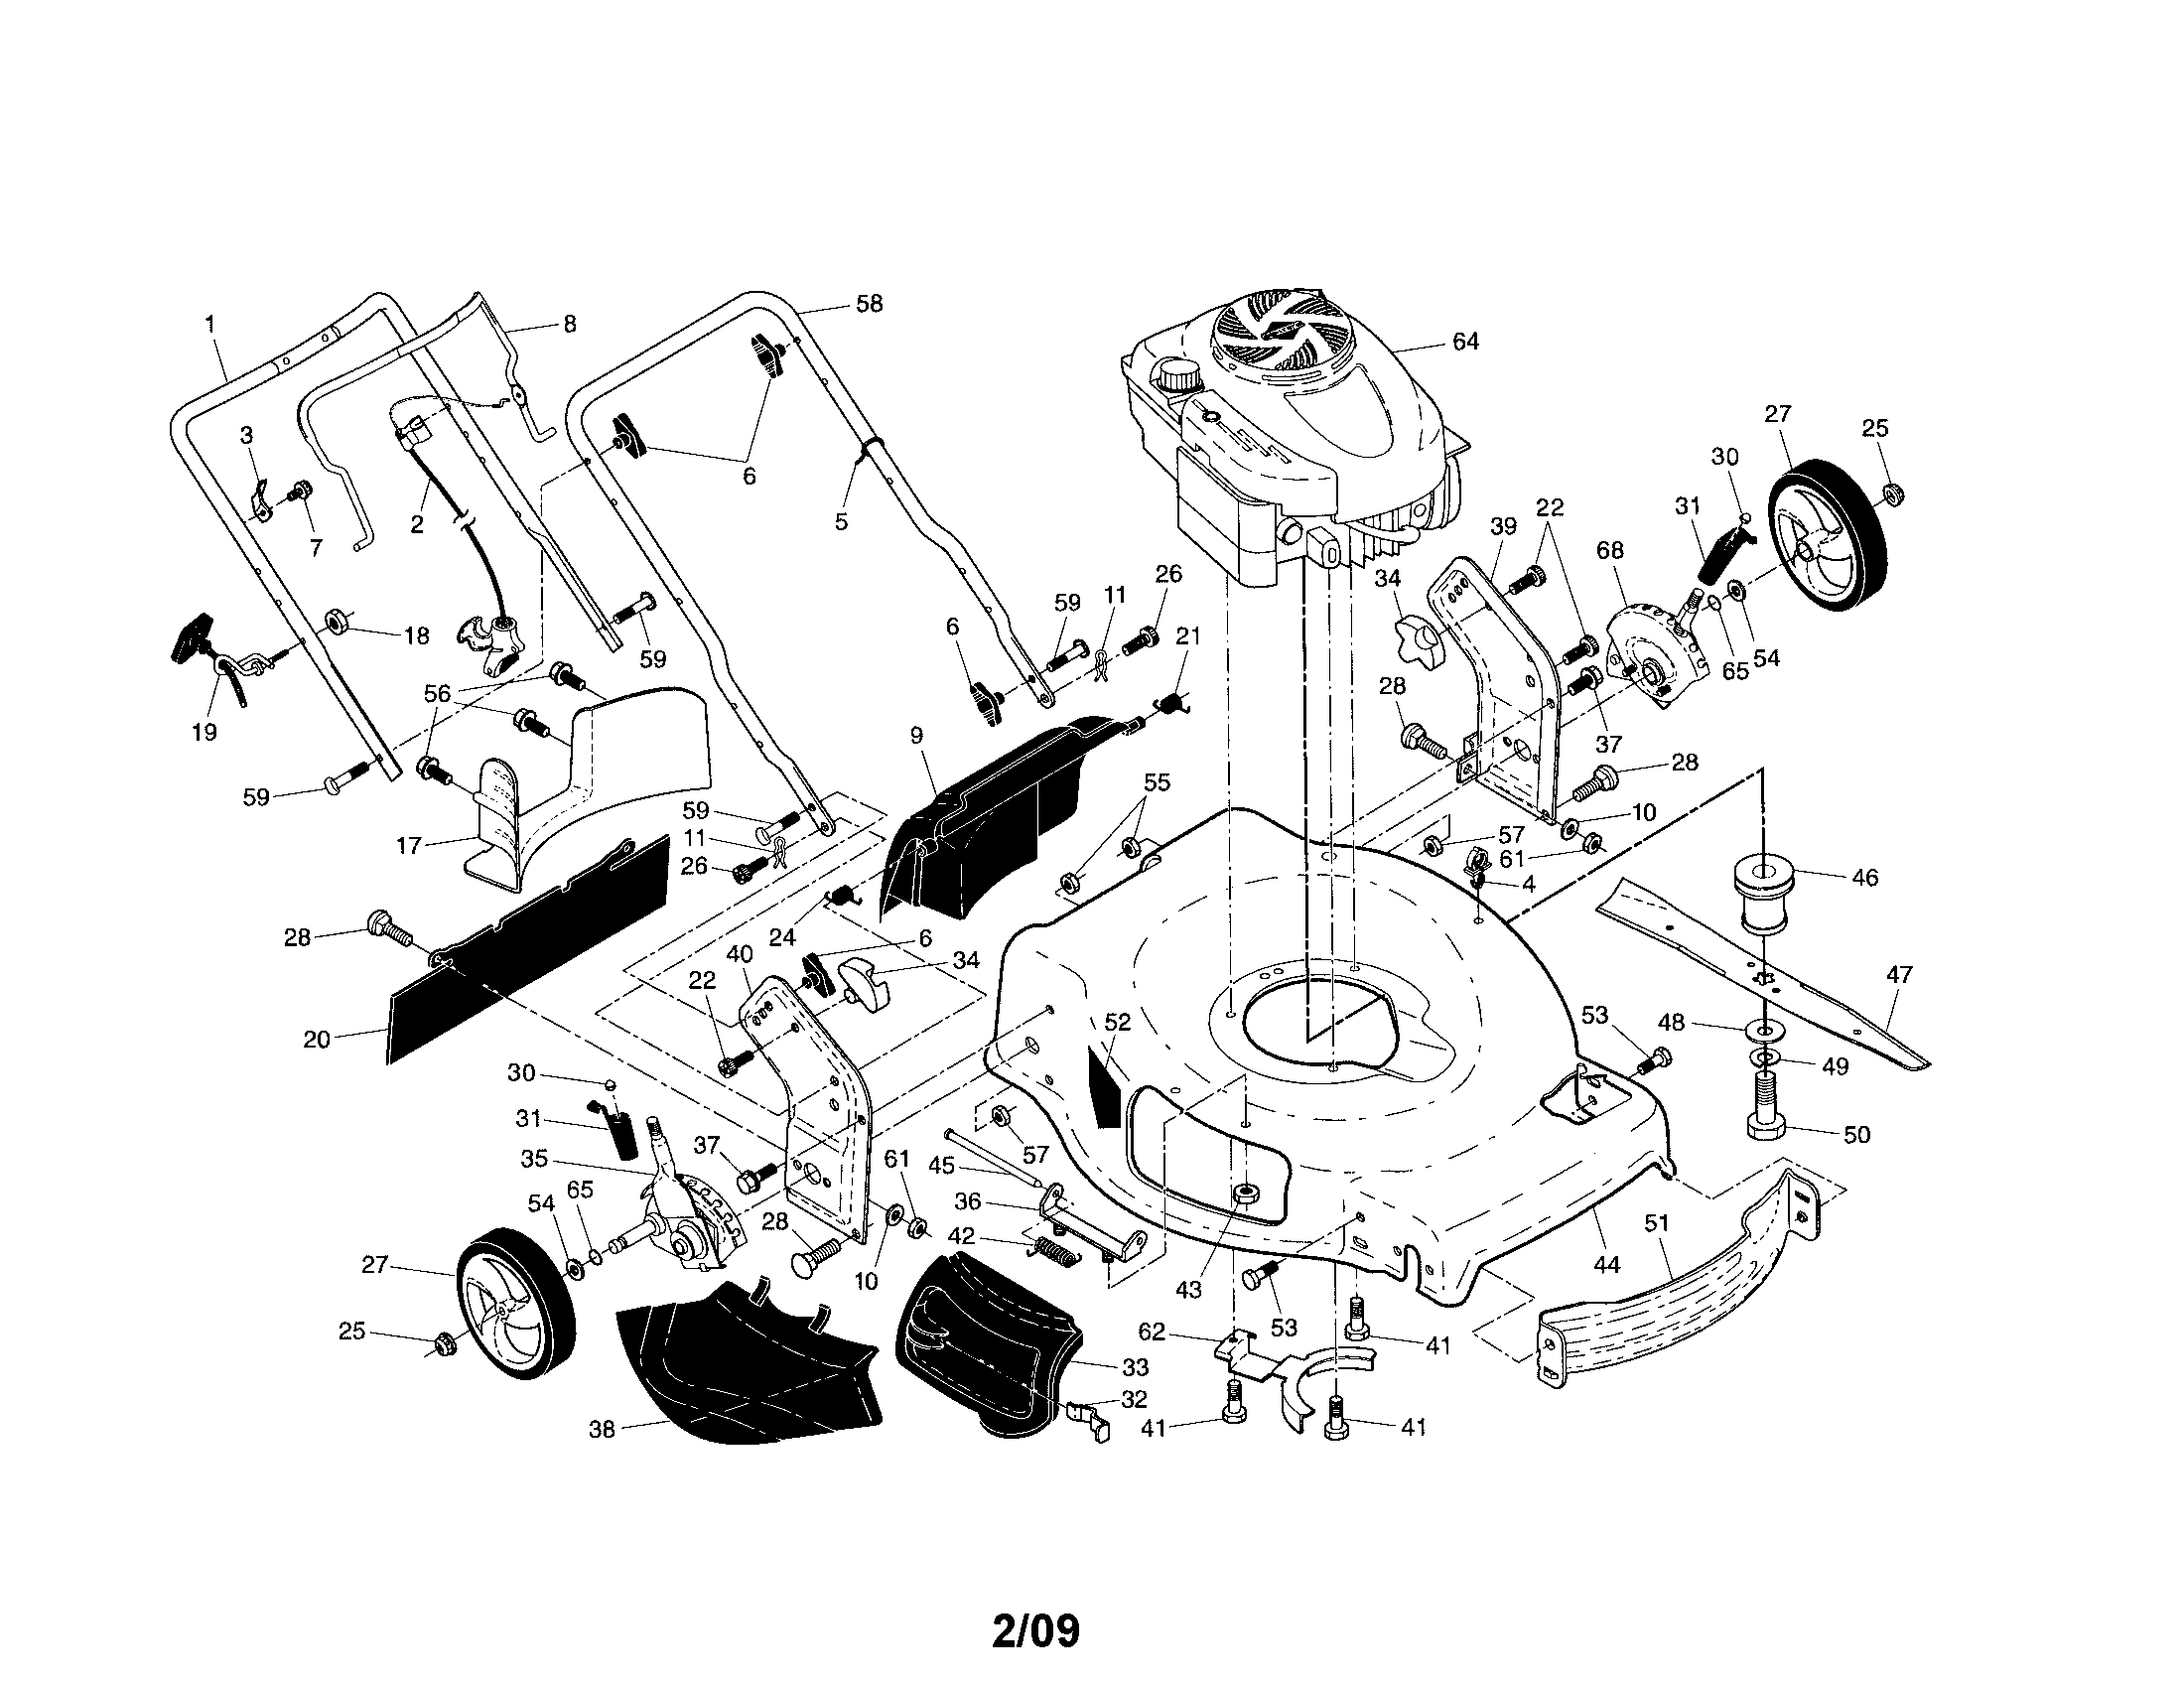 Craftsman Push Lawn Mower Parts : Briggs and stratton lawn mower parts diagram automotive